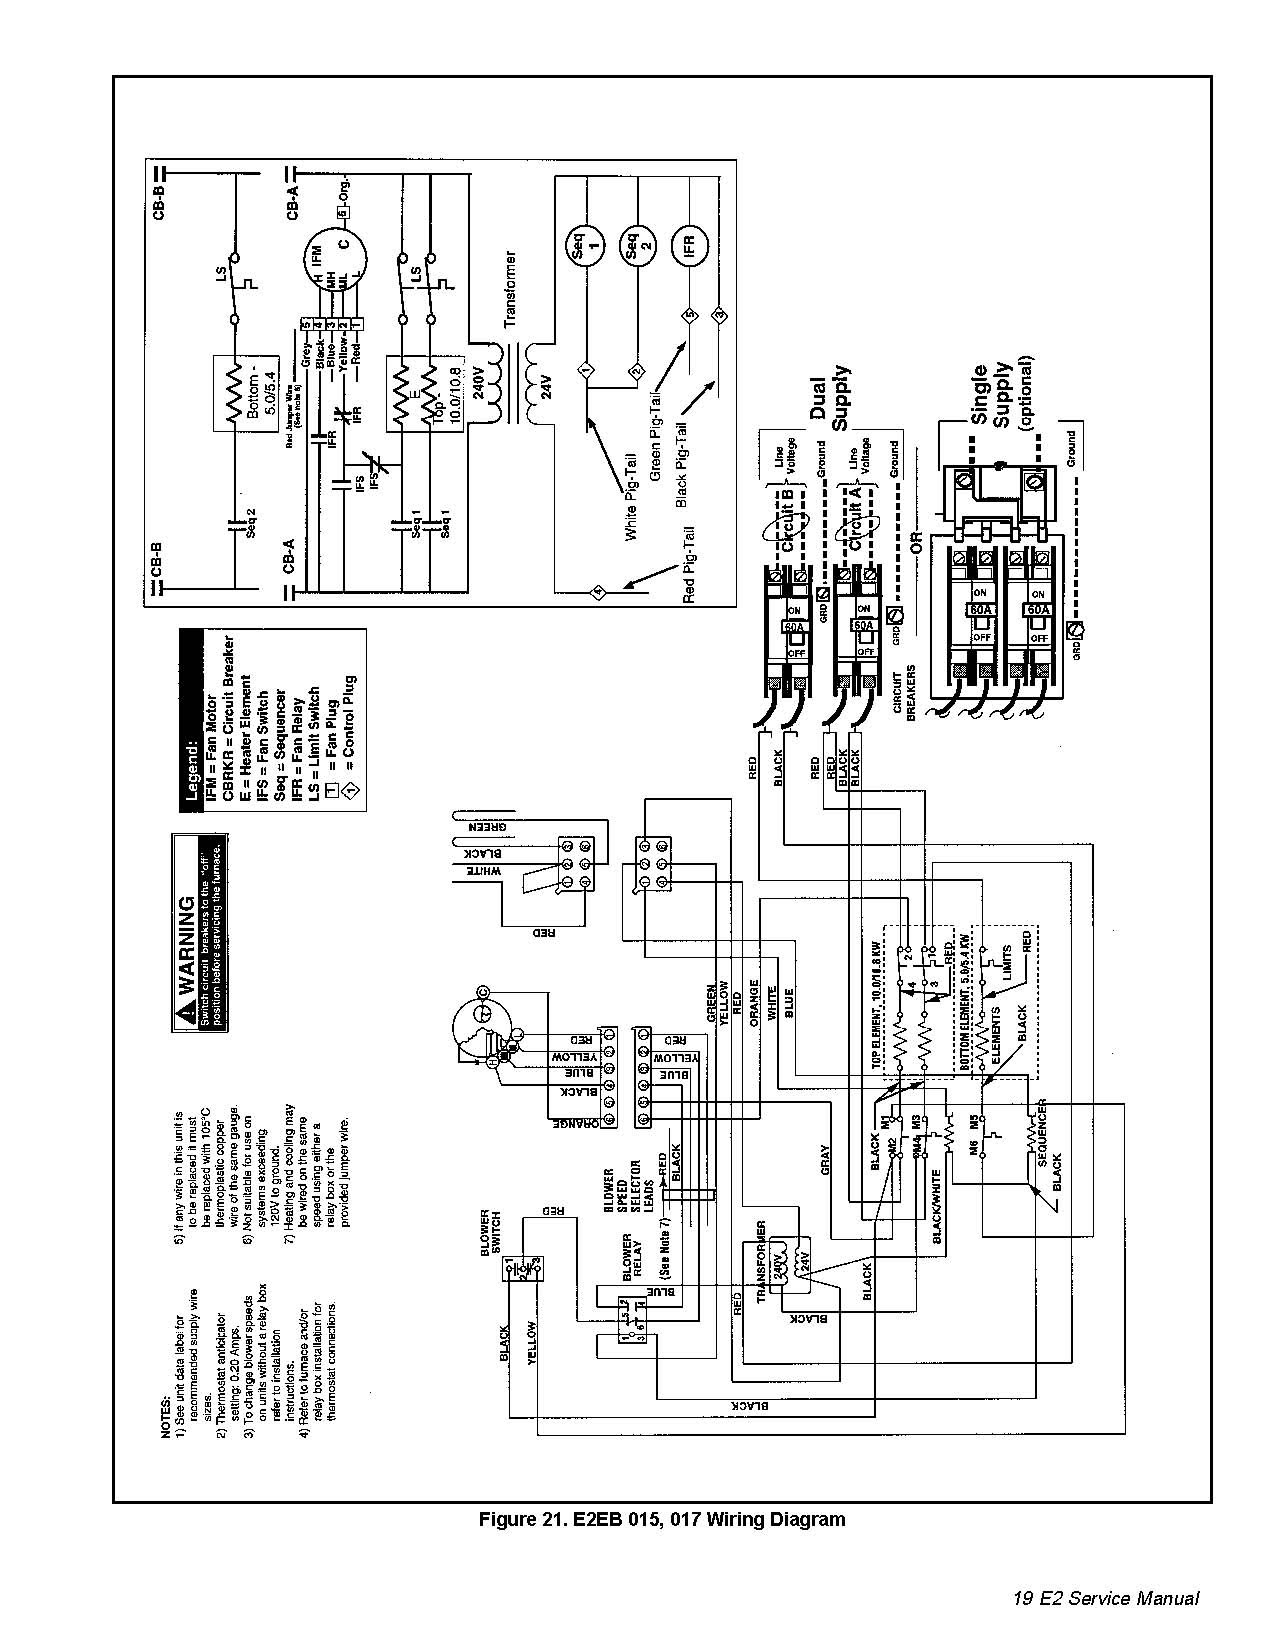 Nordyne Air Handler Wiring Diagram Simple Diagrams Heat Pump Carrier Lennox Wedocable Fa4anf036